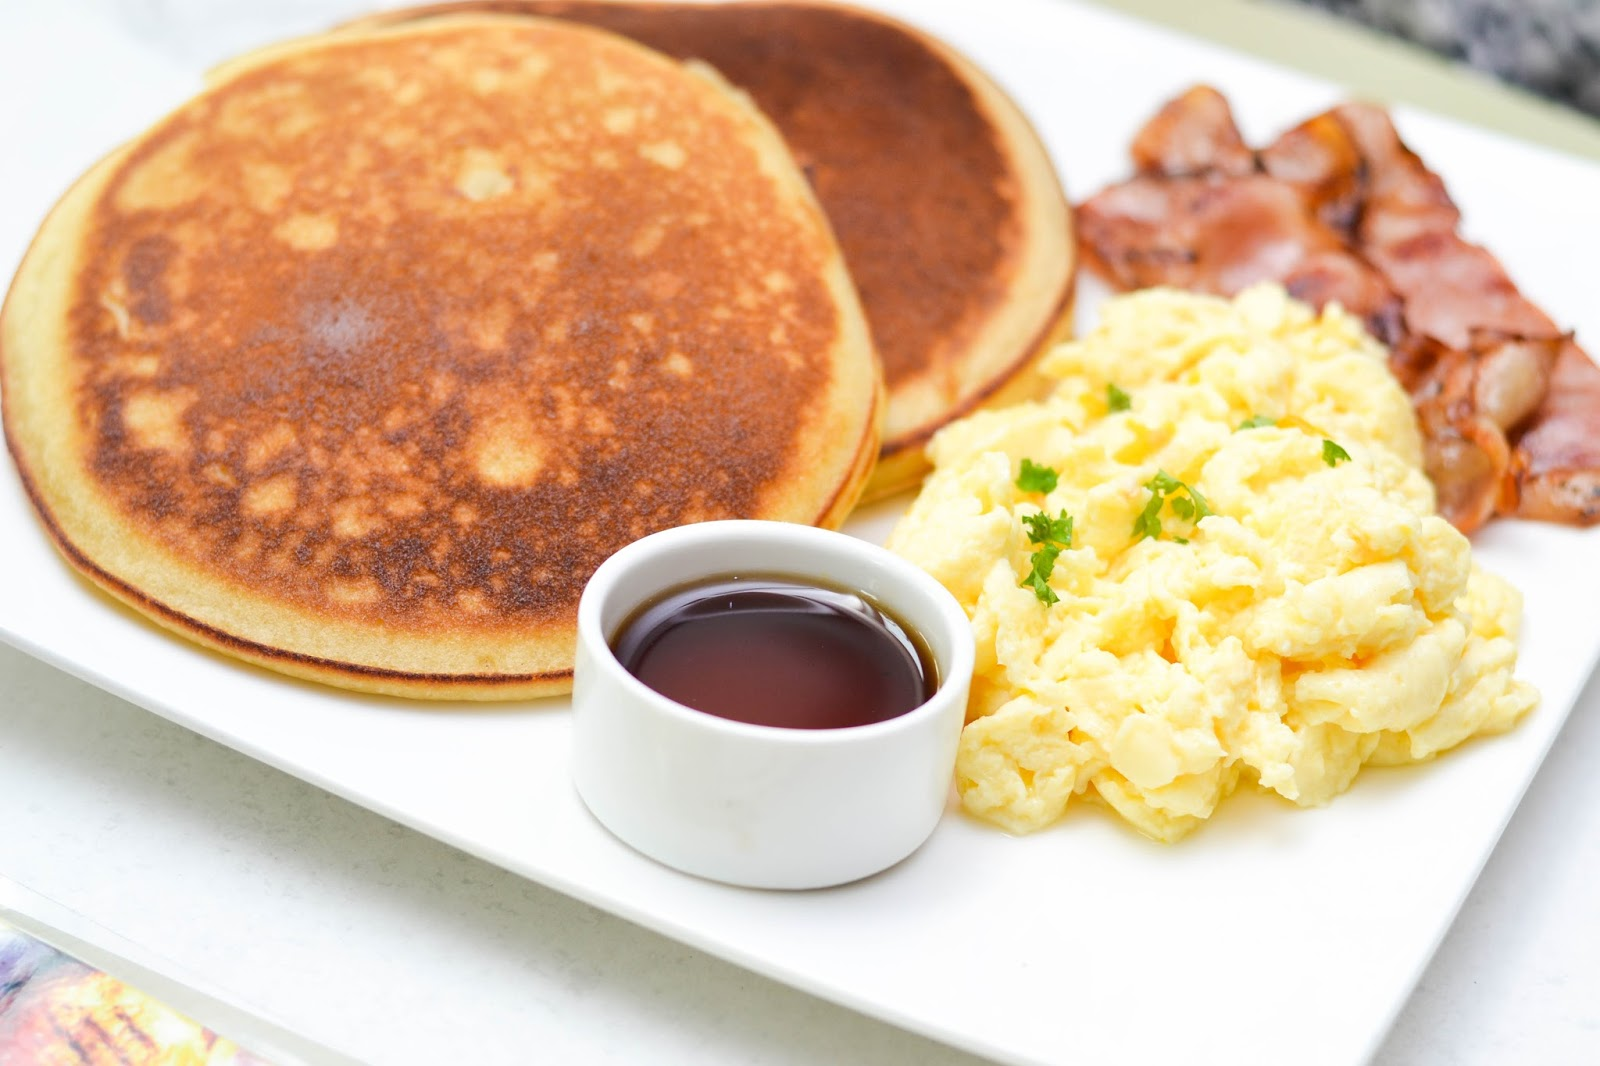 Pancakes, Maple Syrup and Scrambled Eggs